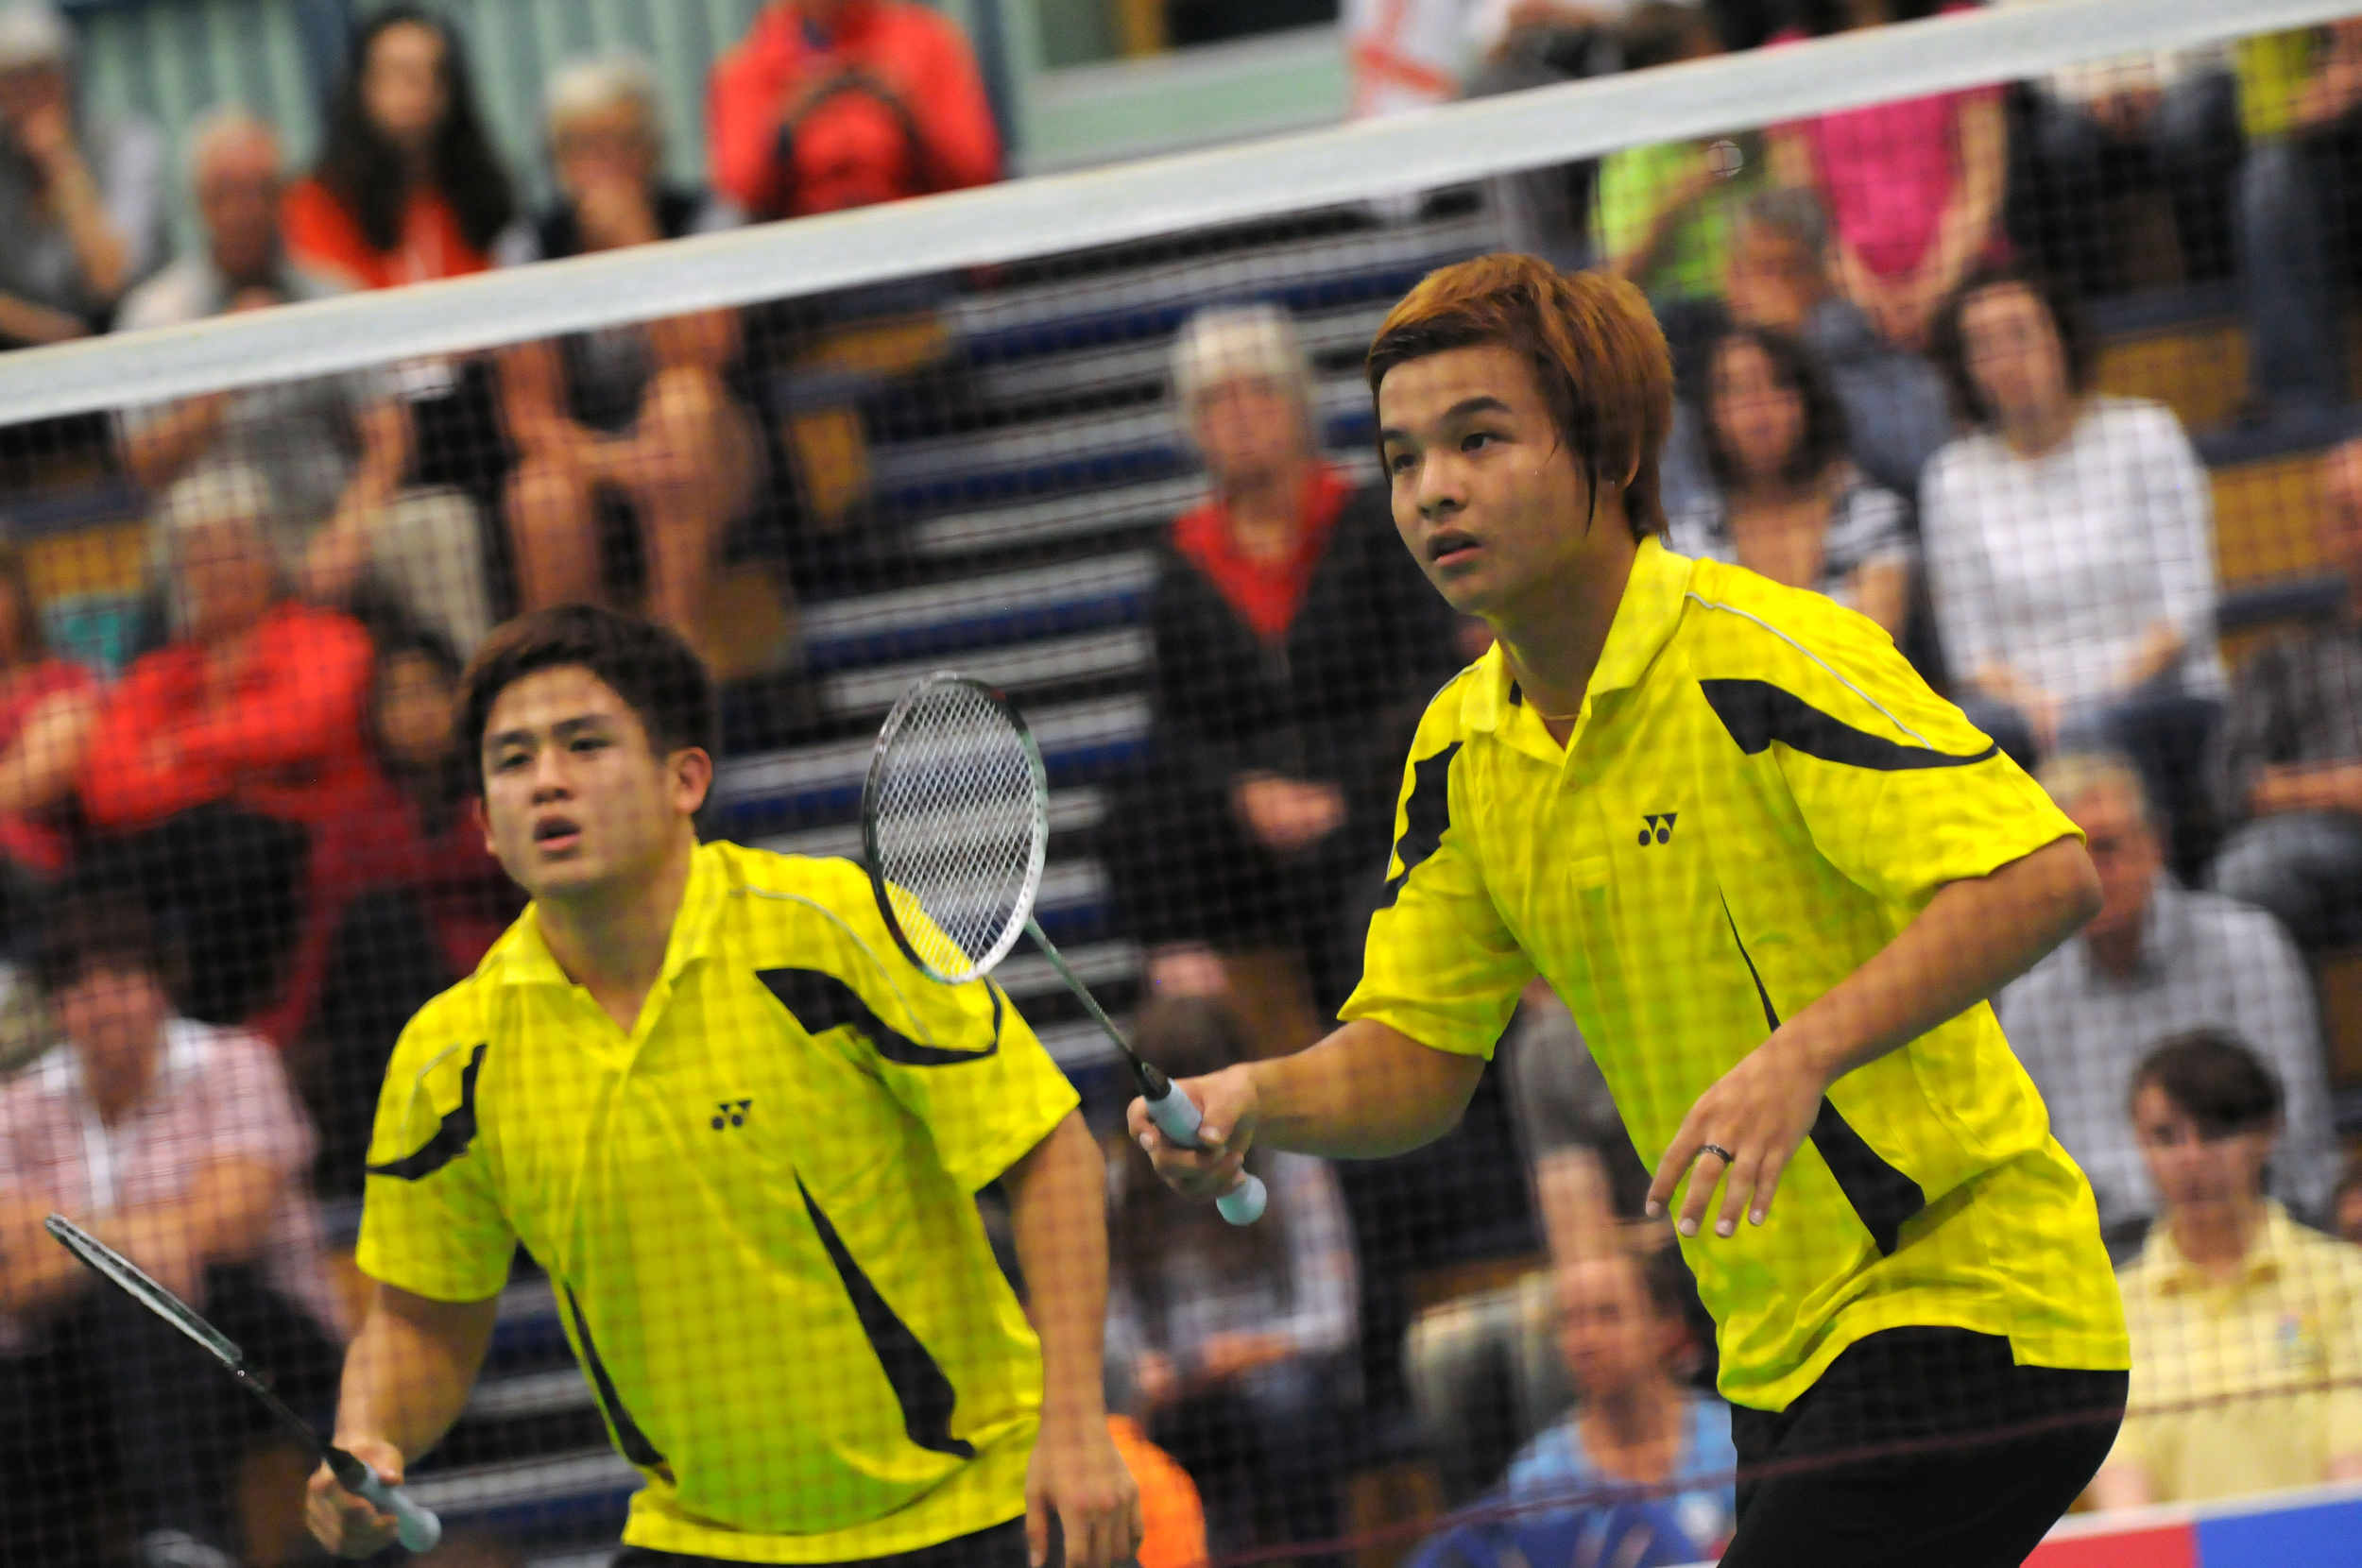 Nelson Heg and Ee yi Teo representing Malaysia win the gold medal in the Men's Doubles Badminton at the 2011 Commonwealth Youth Games